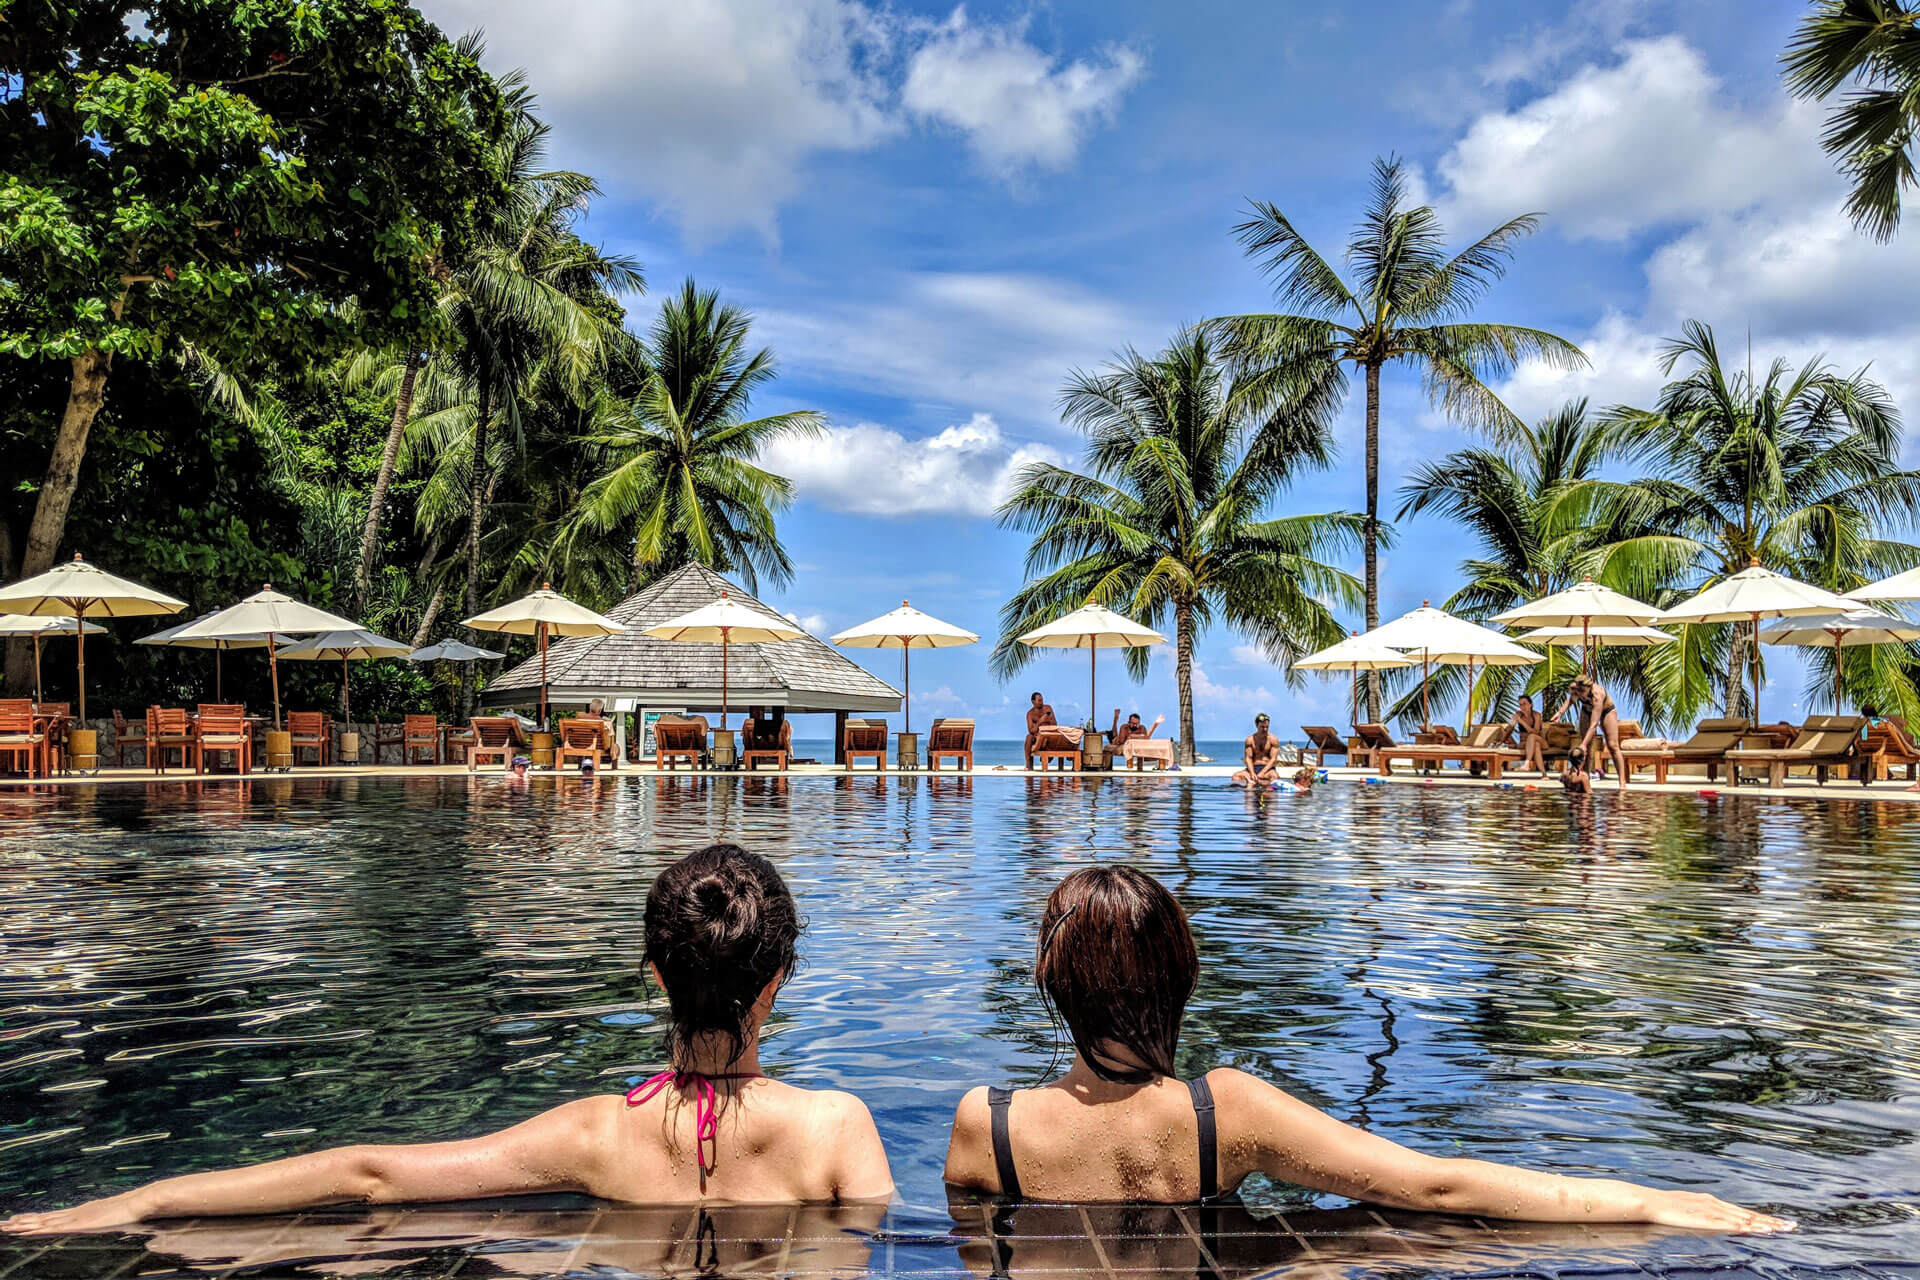 Resort Properties Continue to Thrive and Expand